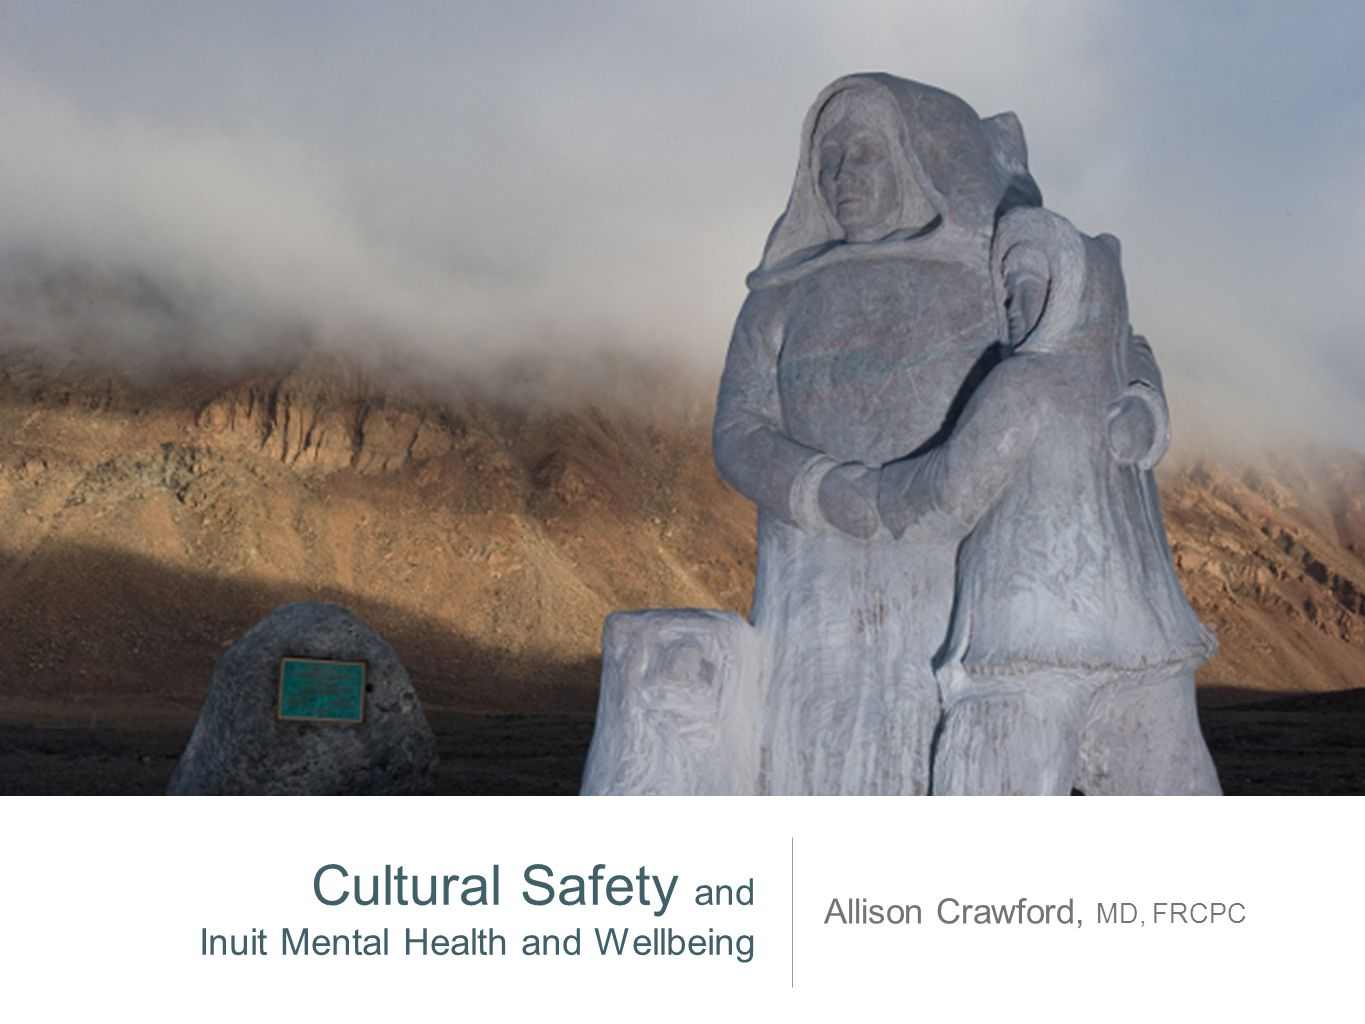 Cultural Safety and Inuit Mental Health and Wellbeing